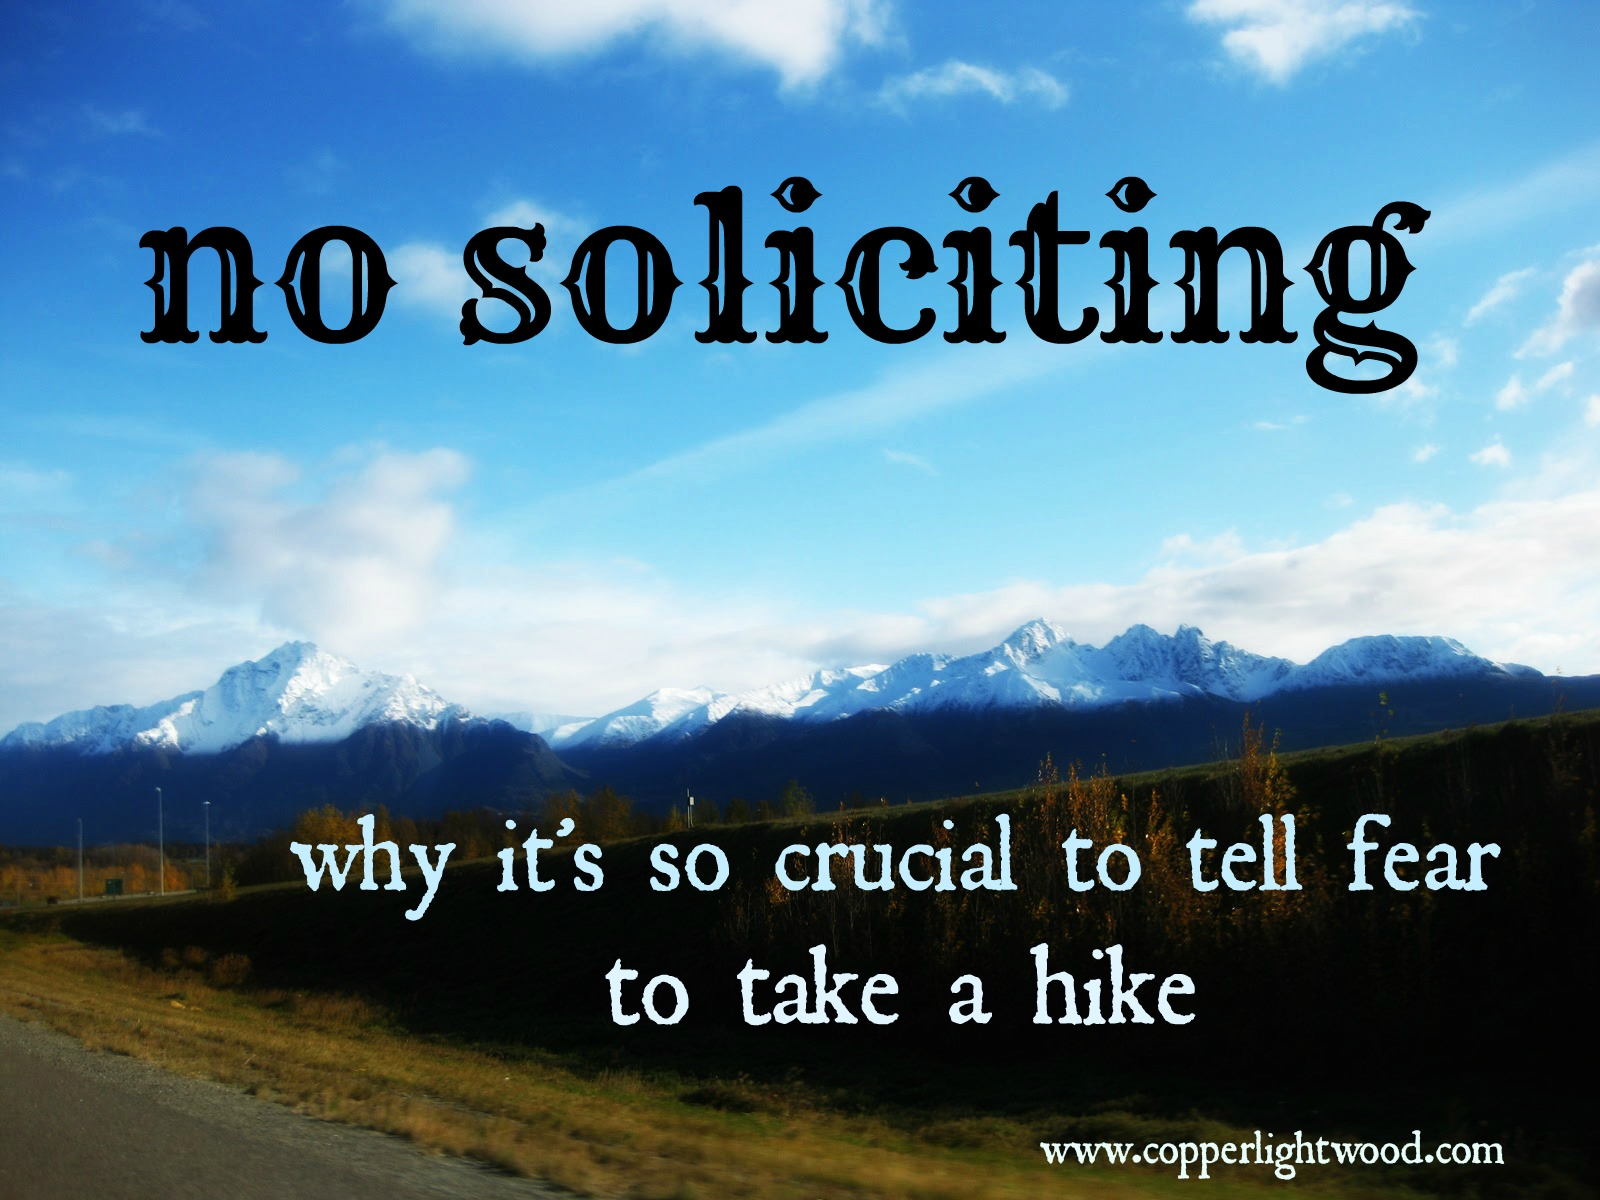 no soliciting: why it's so crucial that we tell fear to take a hike (Copperlight Wood)